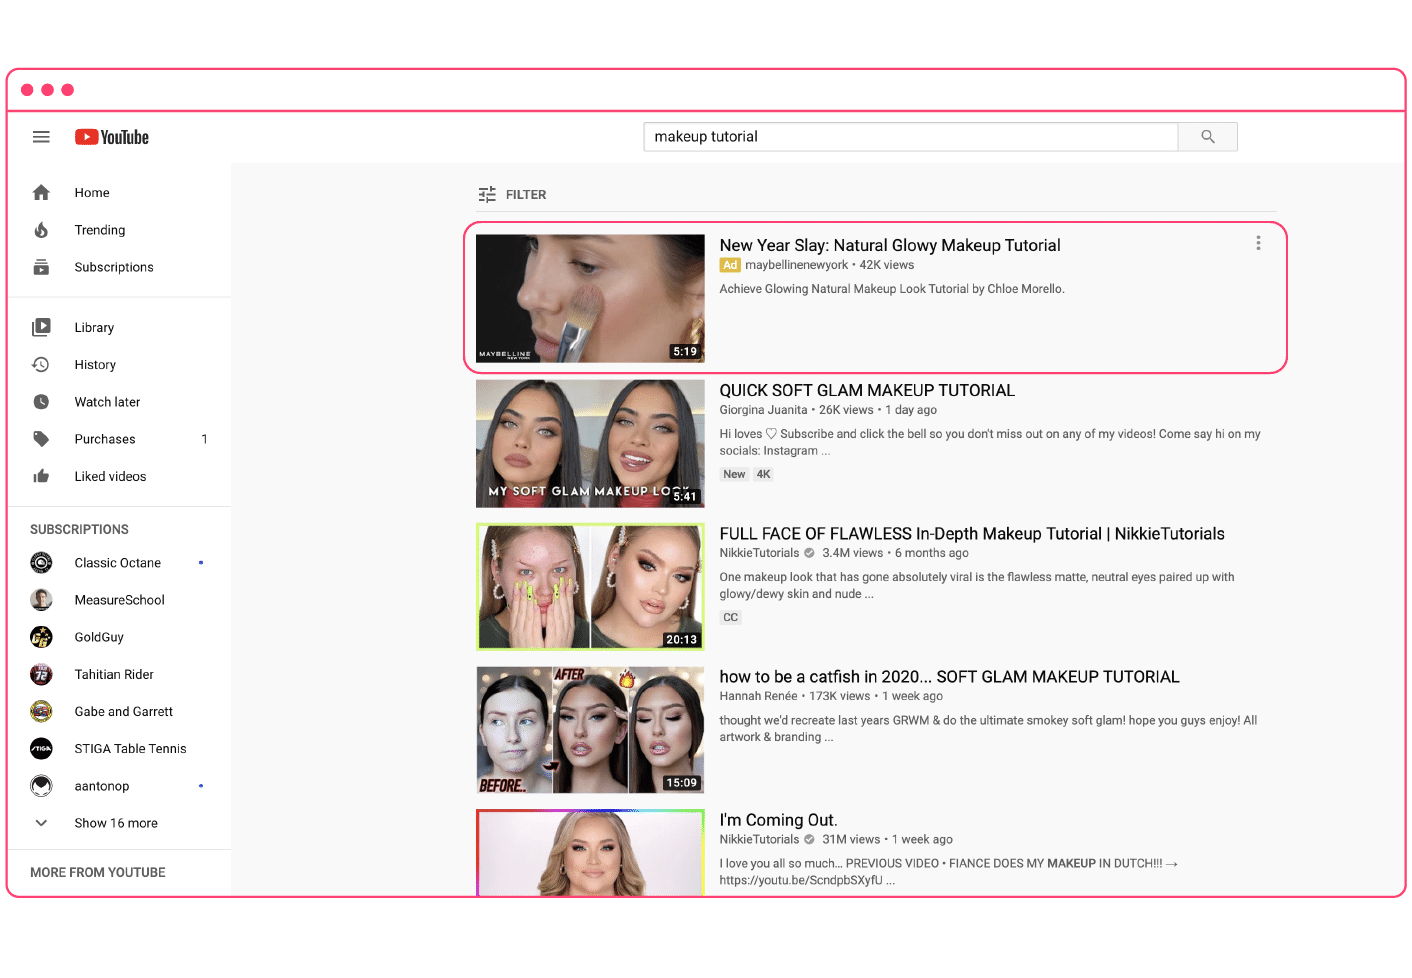 YouTube TrueView discovery ad